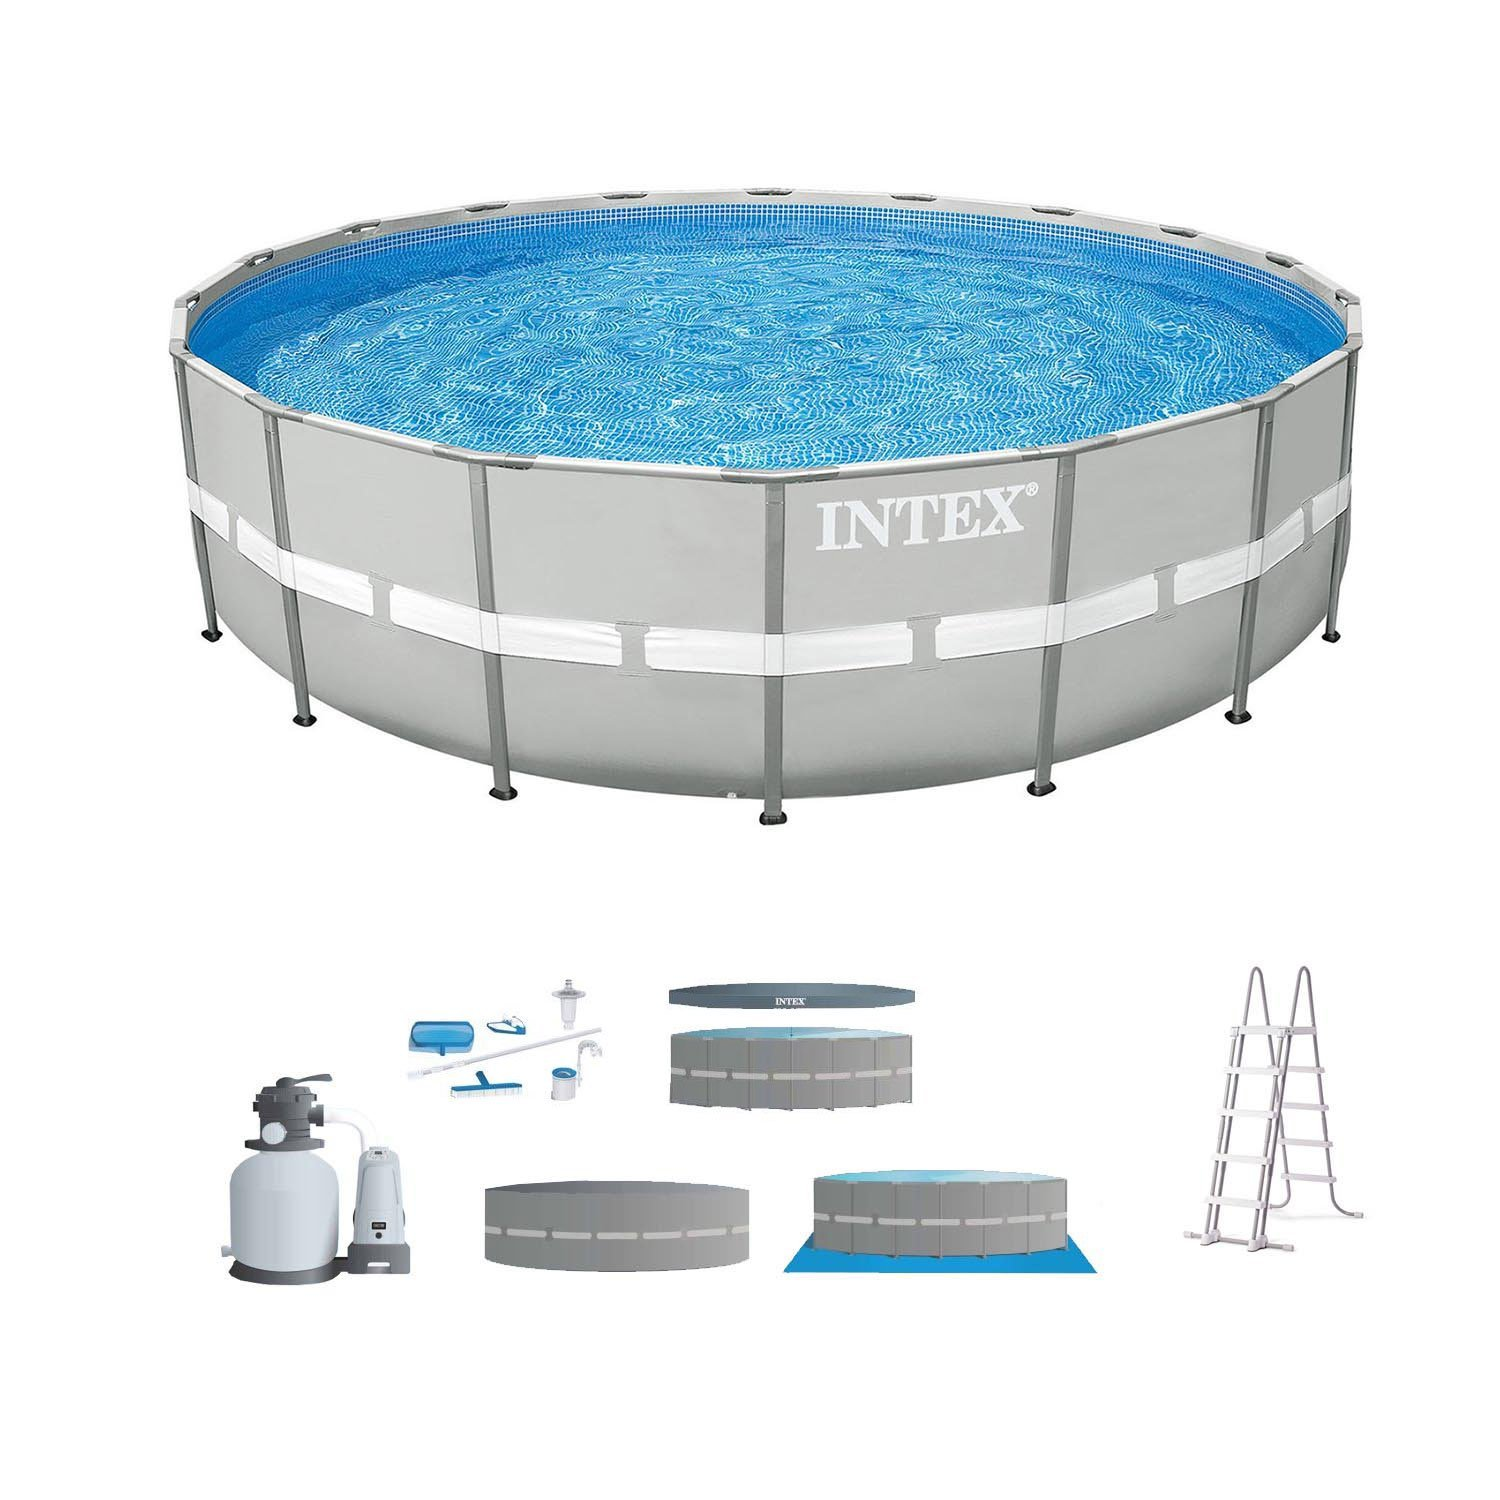 intex 24 39 x 52 steel ultra frame round above ground swimming pool set with pump whole pools. Black Bedroom Furniture Sets. Home Design Ideas